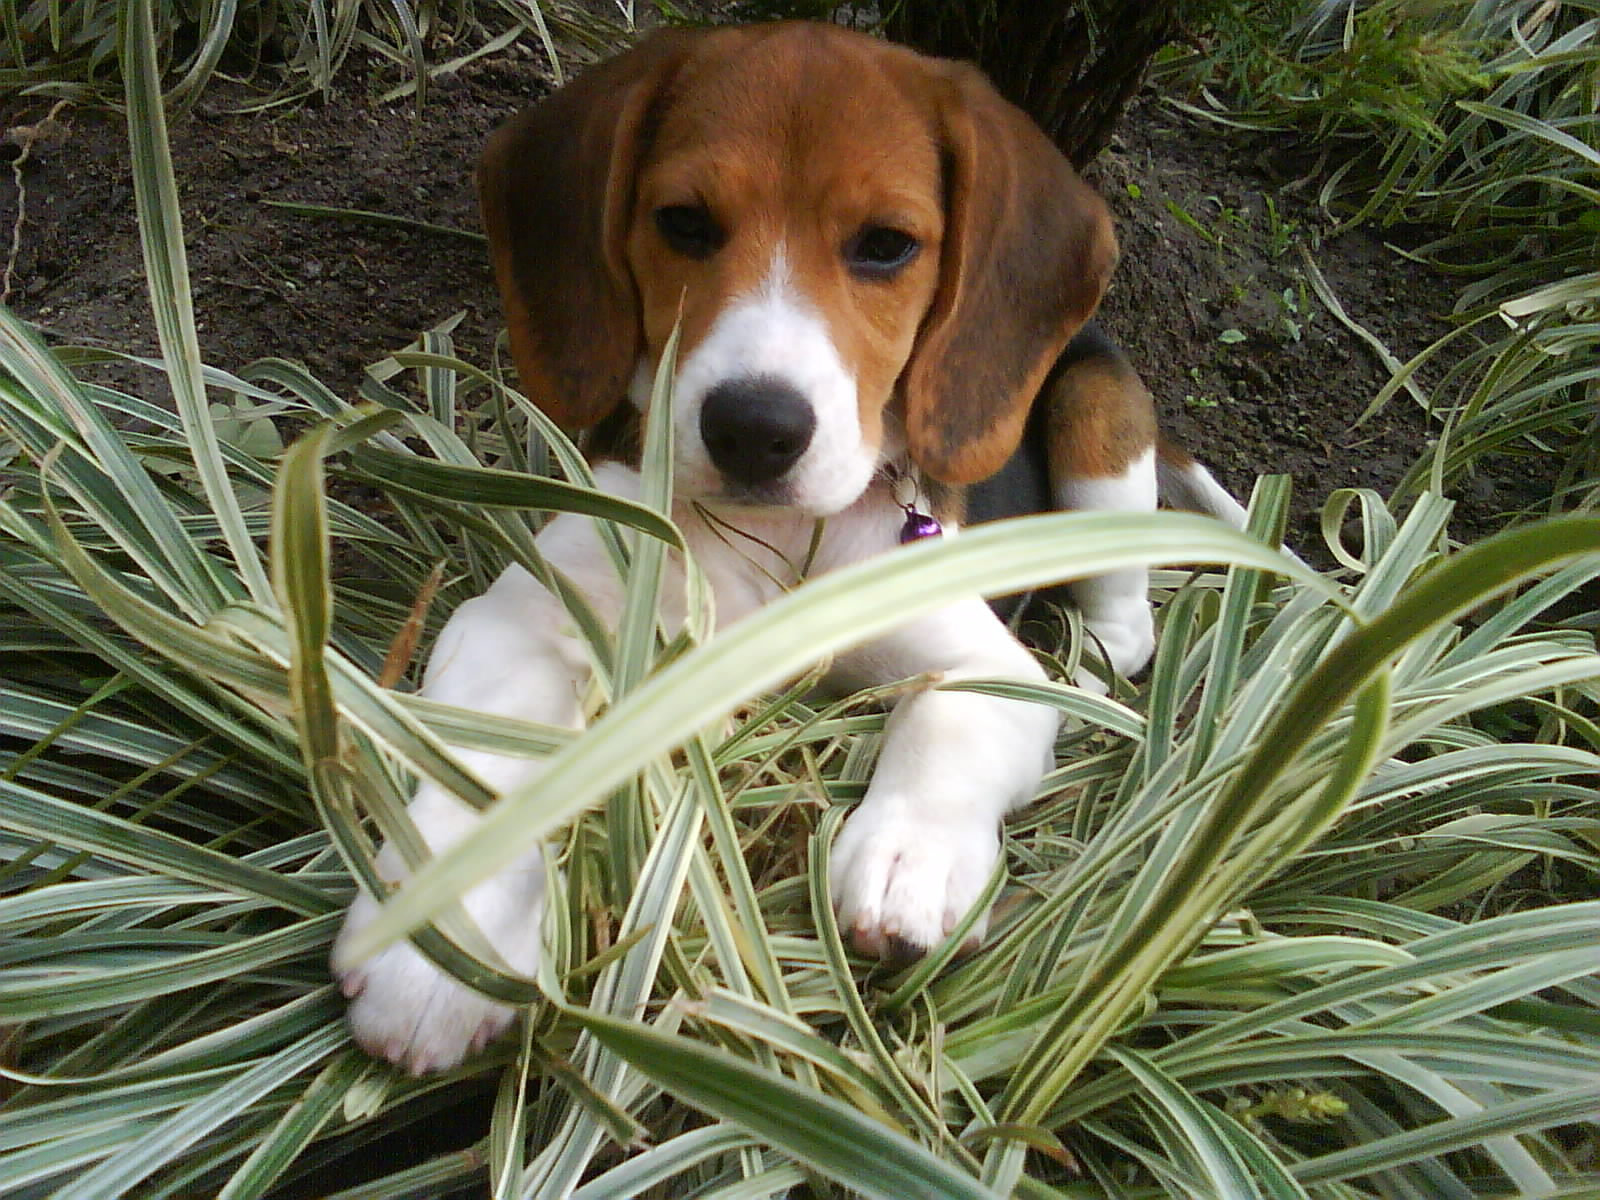 beagle beagles cute puppies puppy dog cachorro dogs pet miss pup hounds raza screensavers hunting want rescuing drones korea week